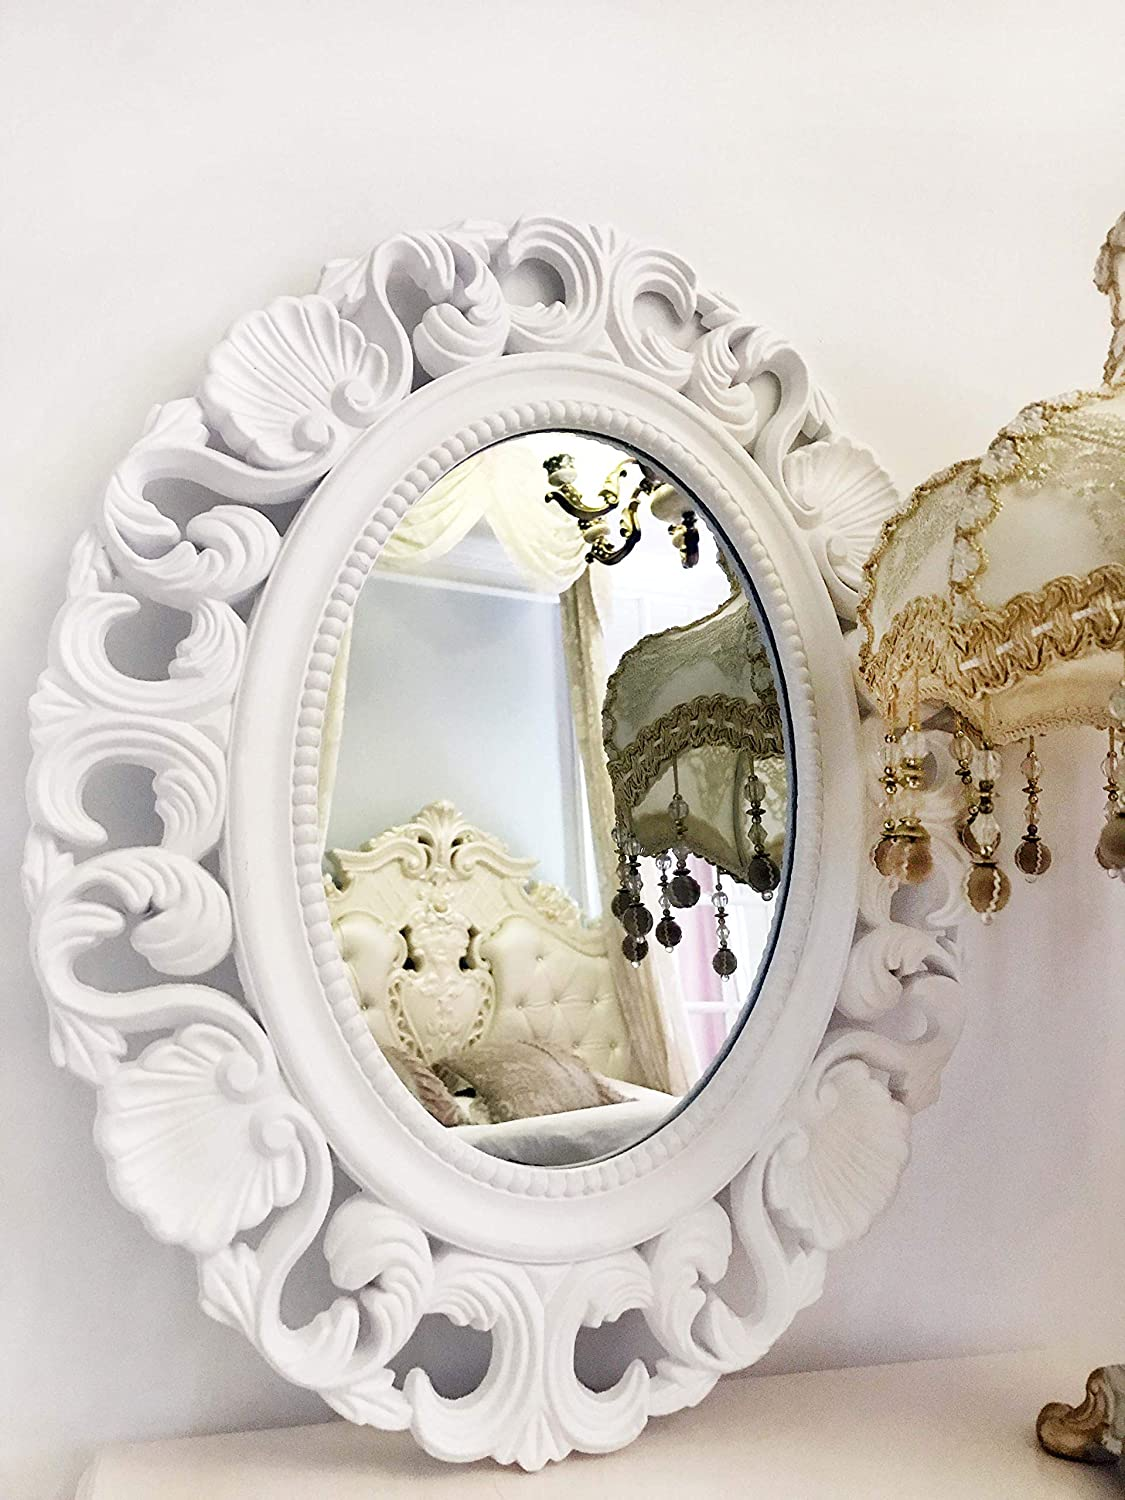 Basswood Hunters Oval Vintage Decortative Wall Mirror, White Wooden Frame, Antique Princess Decor for Bedroom,Bathroom, Living Room,Playroom,Dressers 21''x 17''